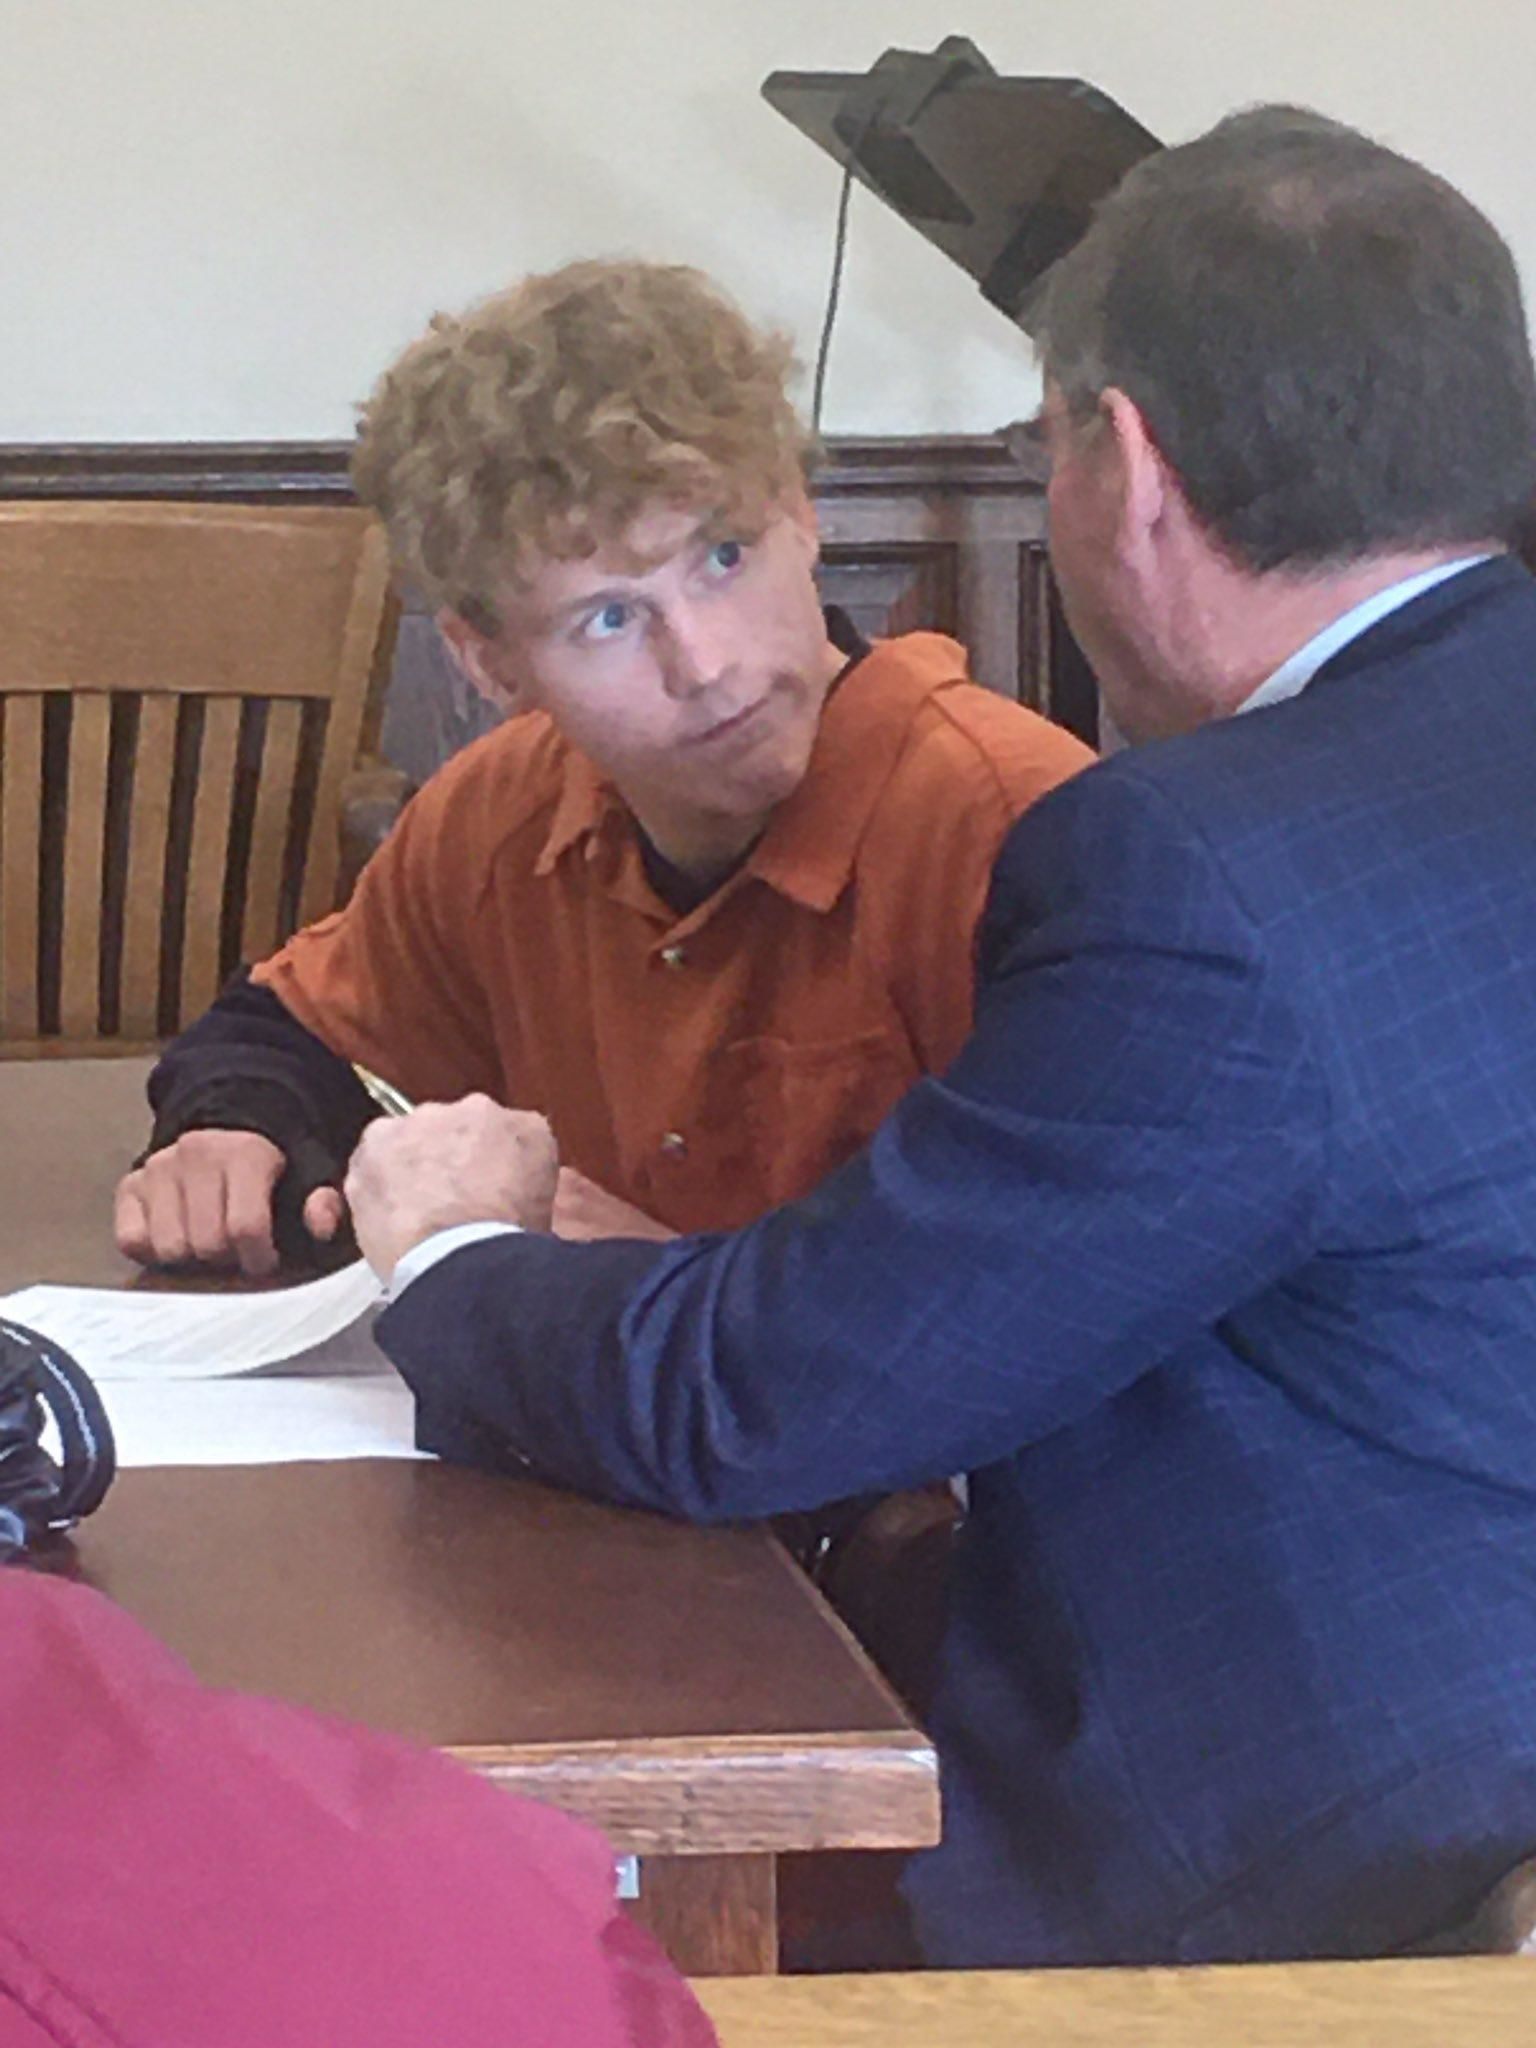 Jordan Buckley{ } pleading not guilty to charges relating to the death of Victoria Schafer in the Hocking Hills this past summer on Nov. 15, 2019. (WSYX/WTTE)